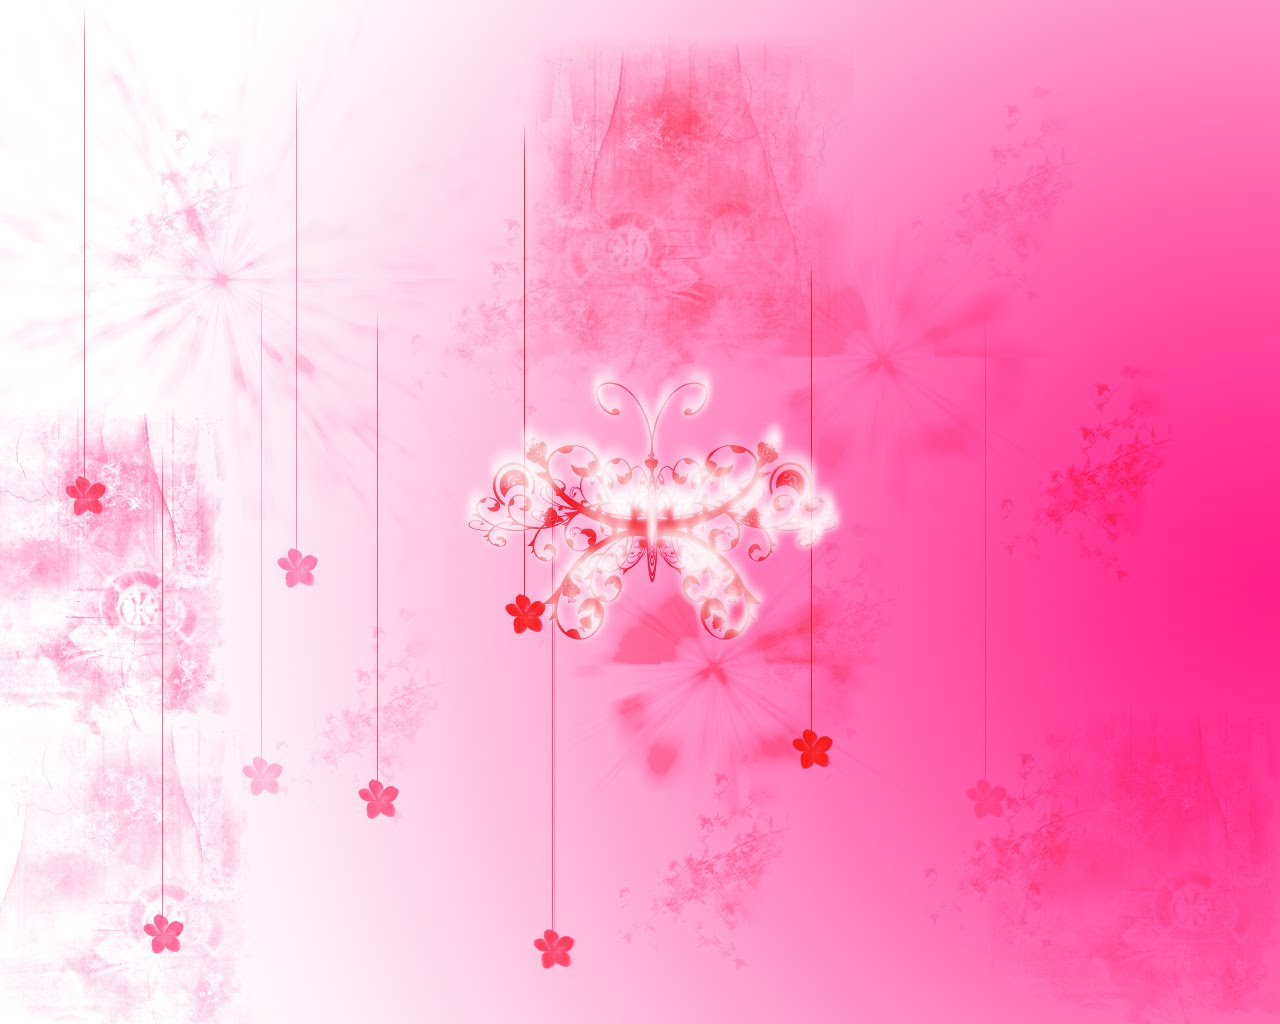 Cute Pink Girly Backgrounds